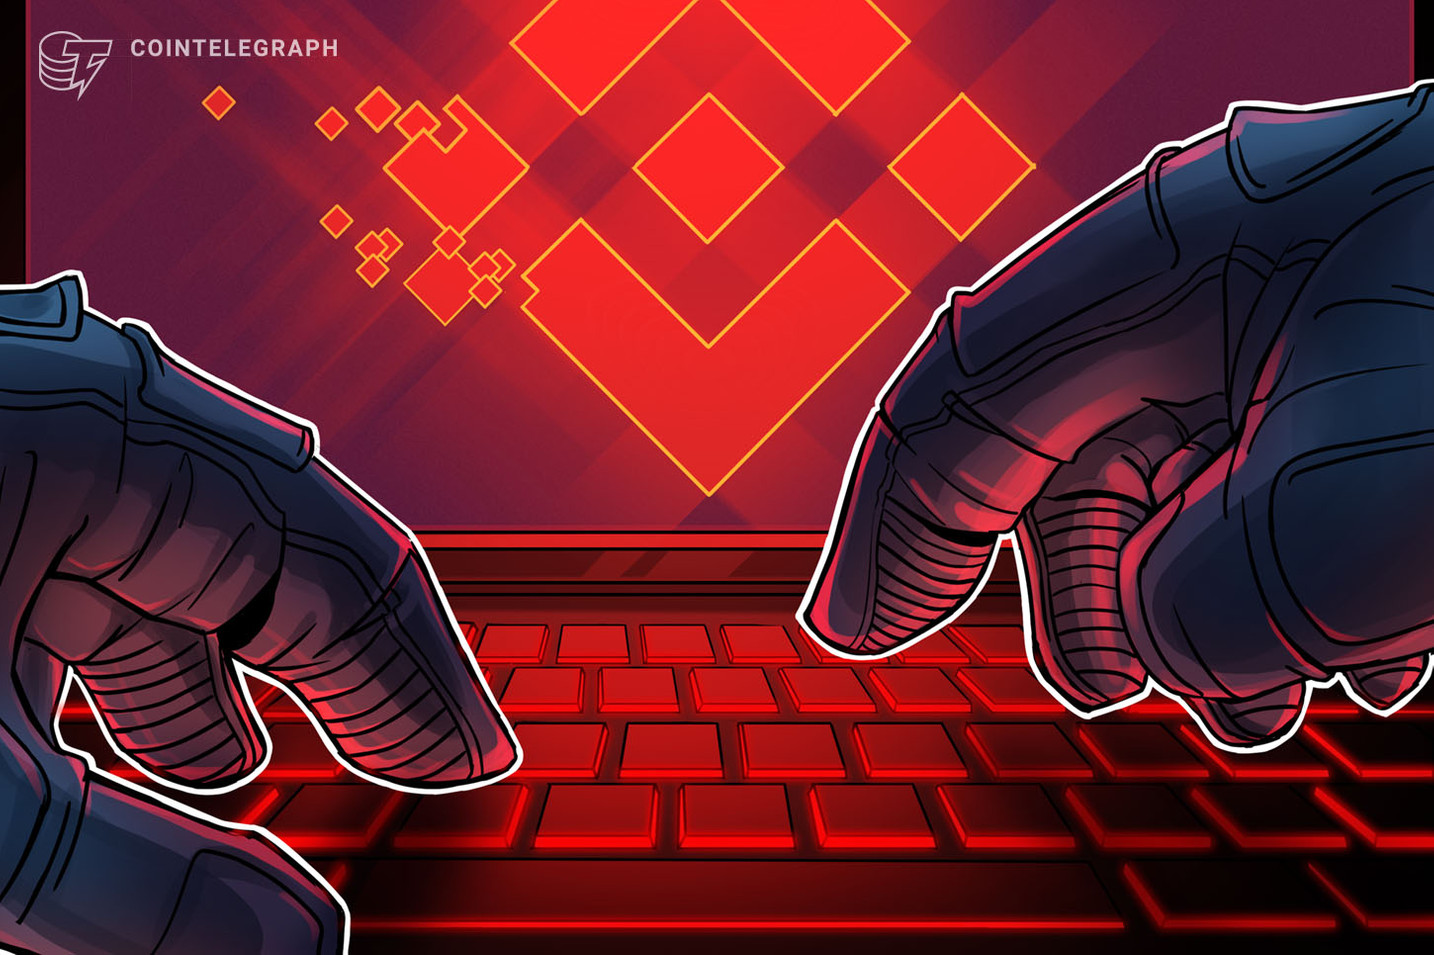 Funds Are SAFU, but Reorg Is Not: What We Know About the Binance Hack So Far